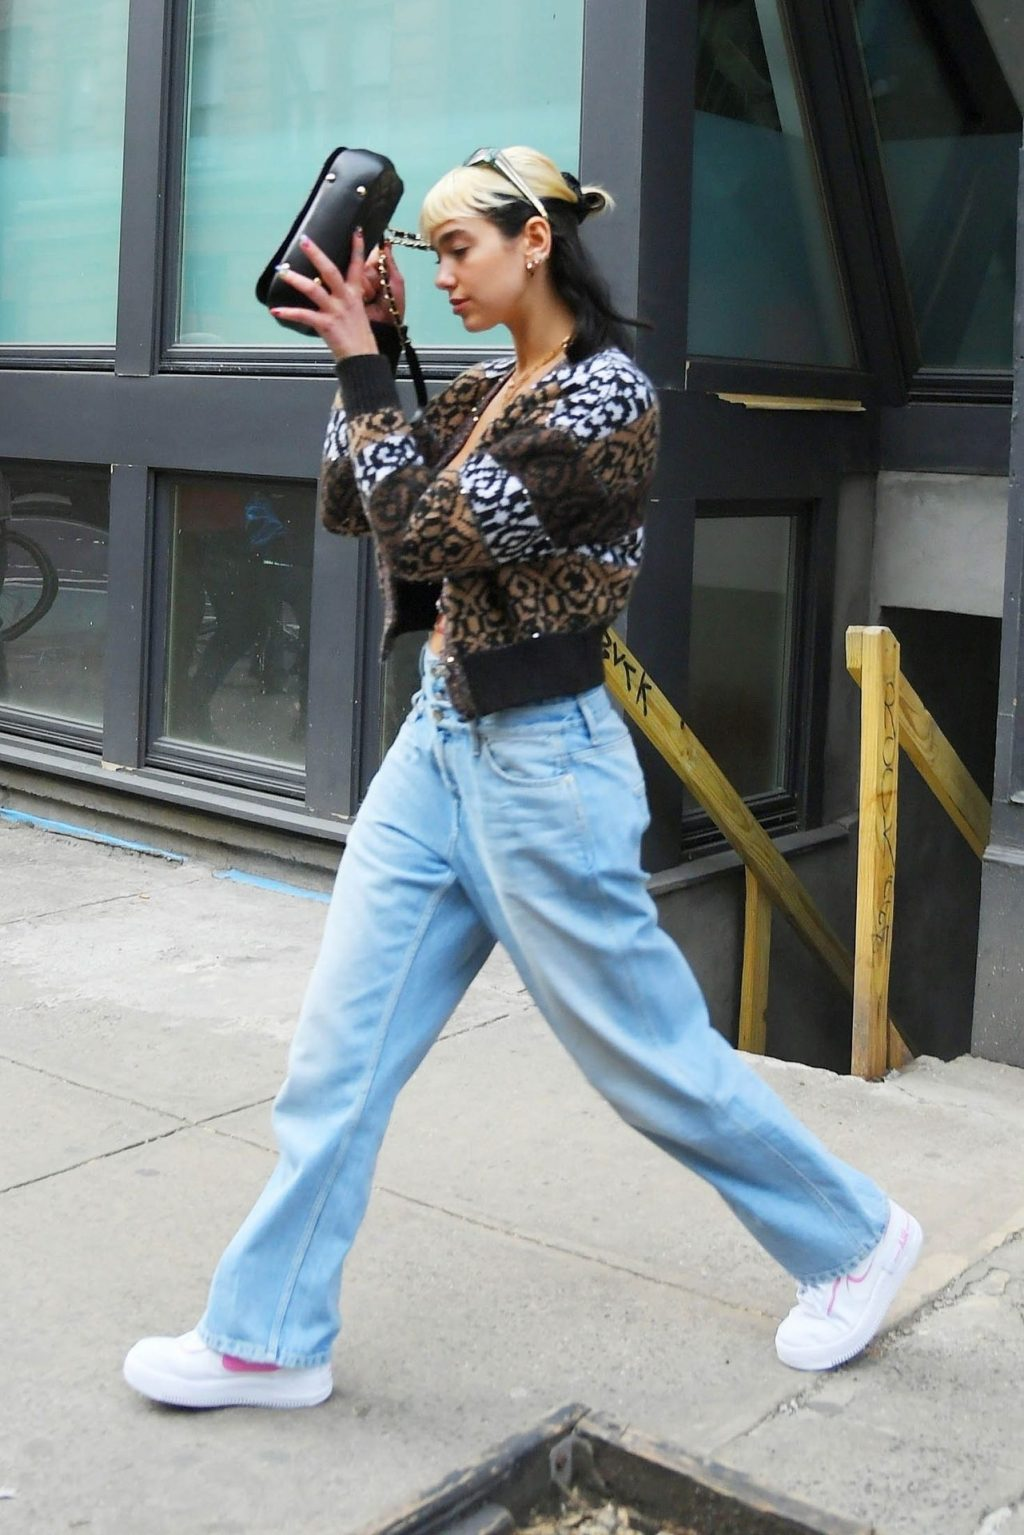 Dua Lipa Spotted Leaving Her Apartment While Wearing a Double Denim Jeans in NYC (67 Photos)